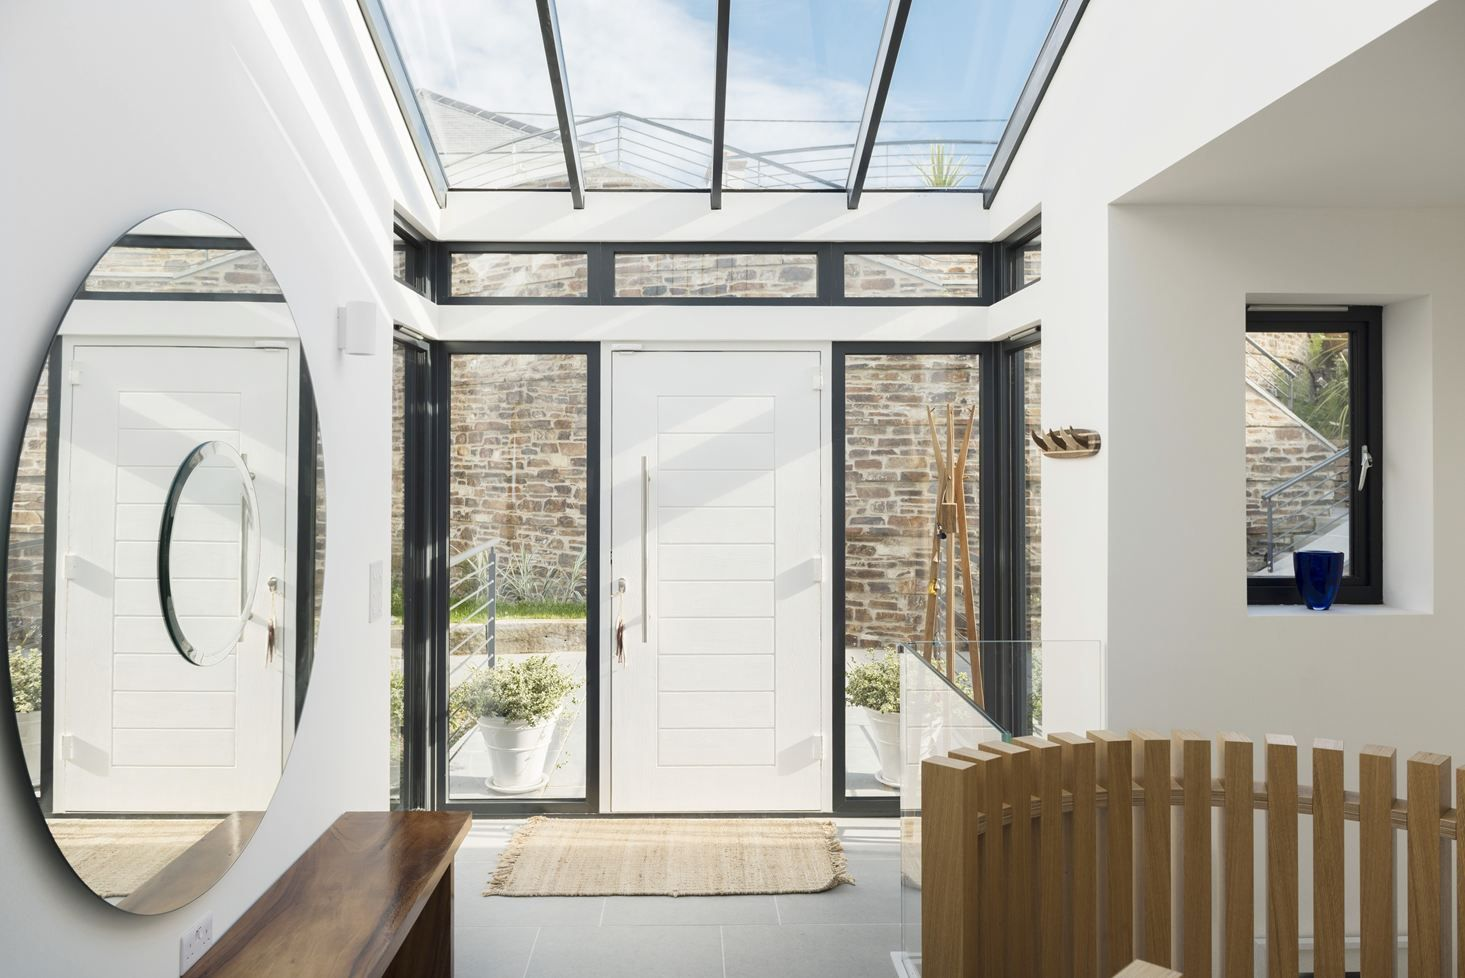 Gwel an treth picture gallery bungalow skylight stone houses doorway